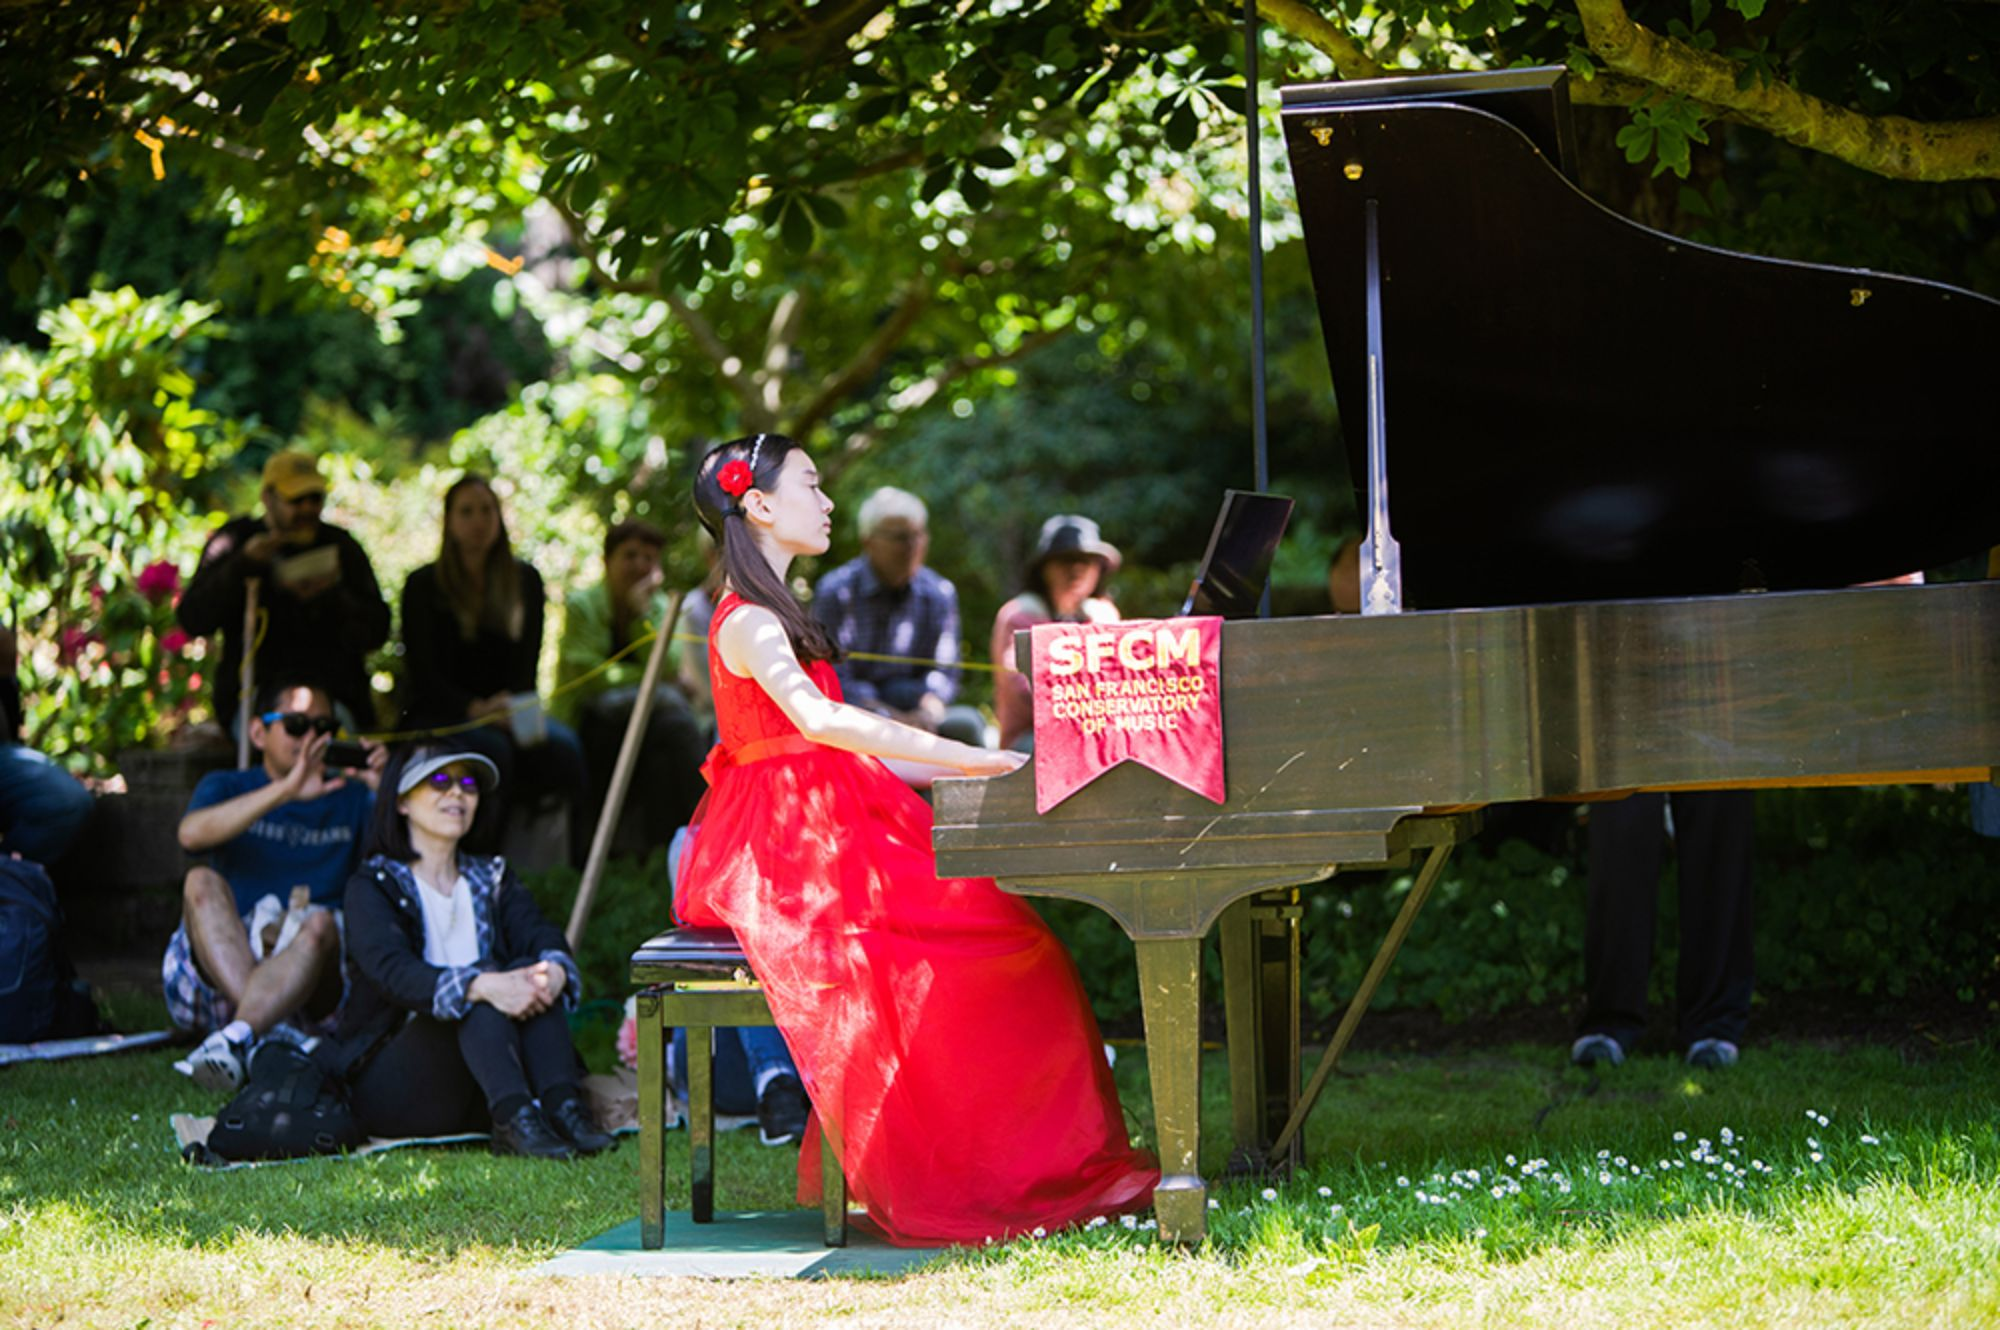 A summer pre-collage student plays the piano at an outdoor concert.  She is wearing a red dress and is surrounded by a small crowd of people smiling at her performance